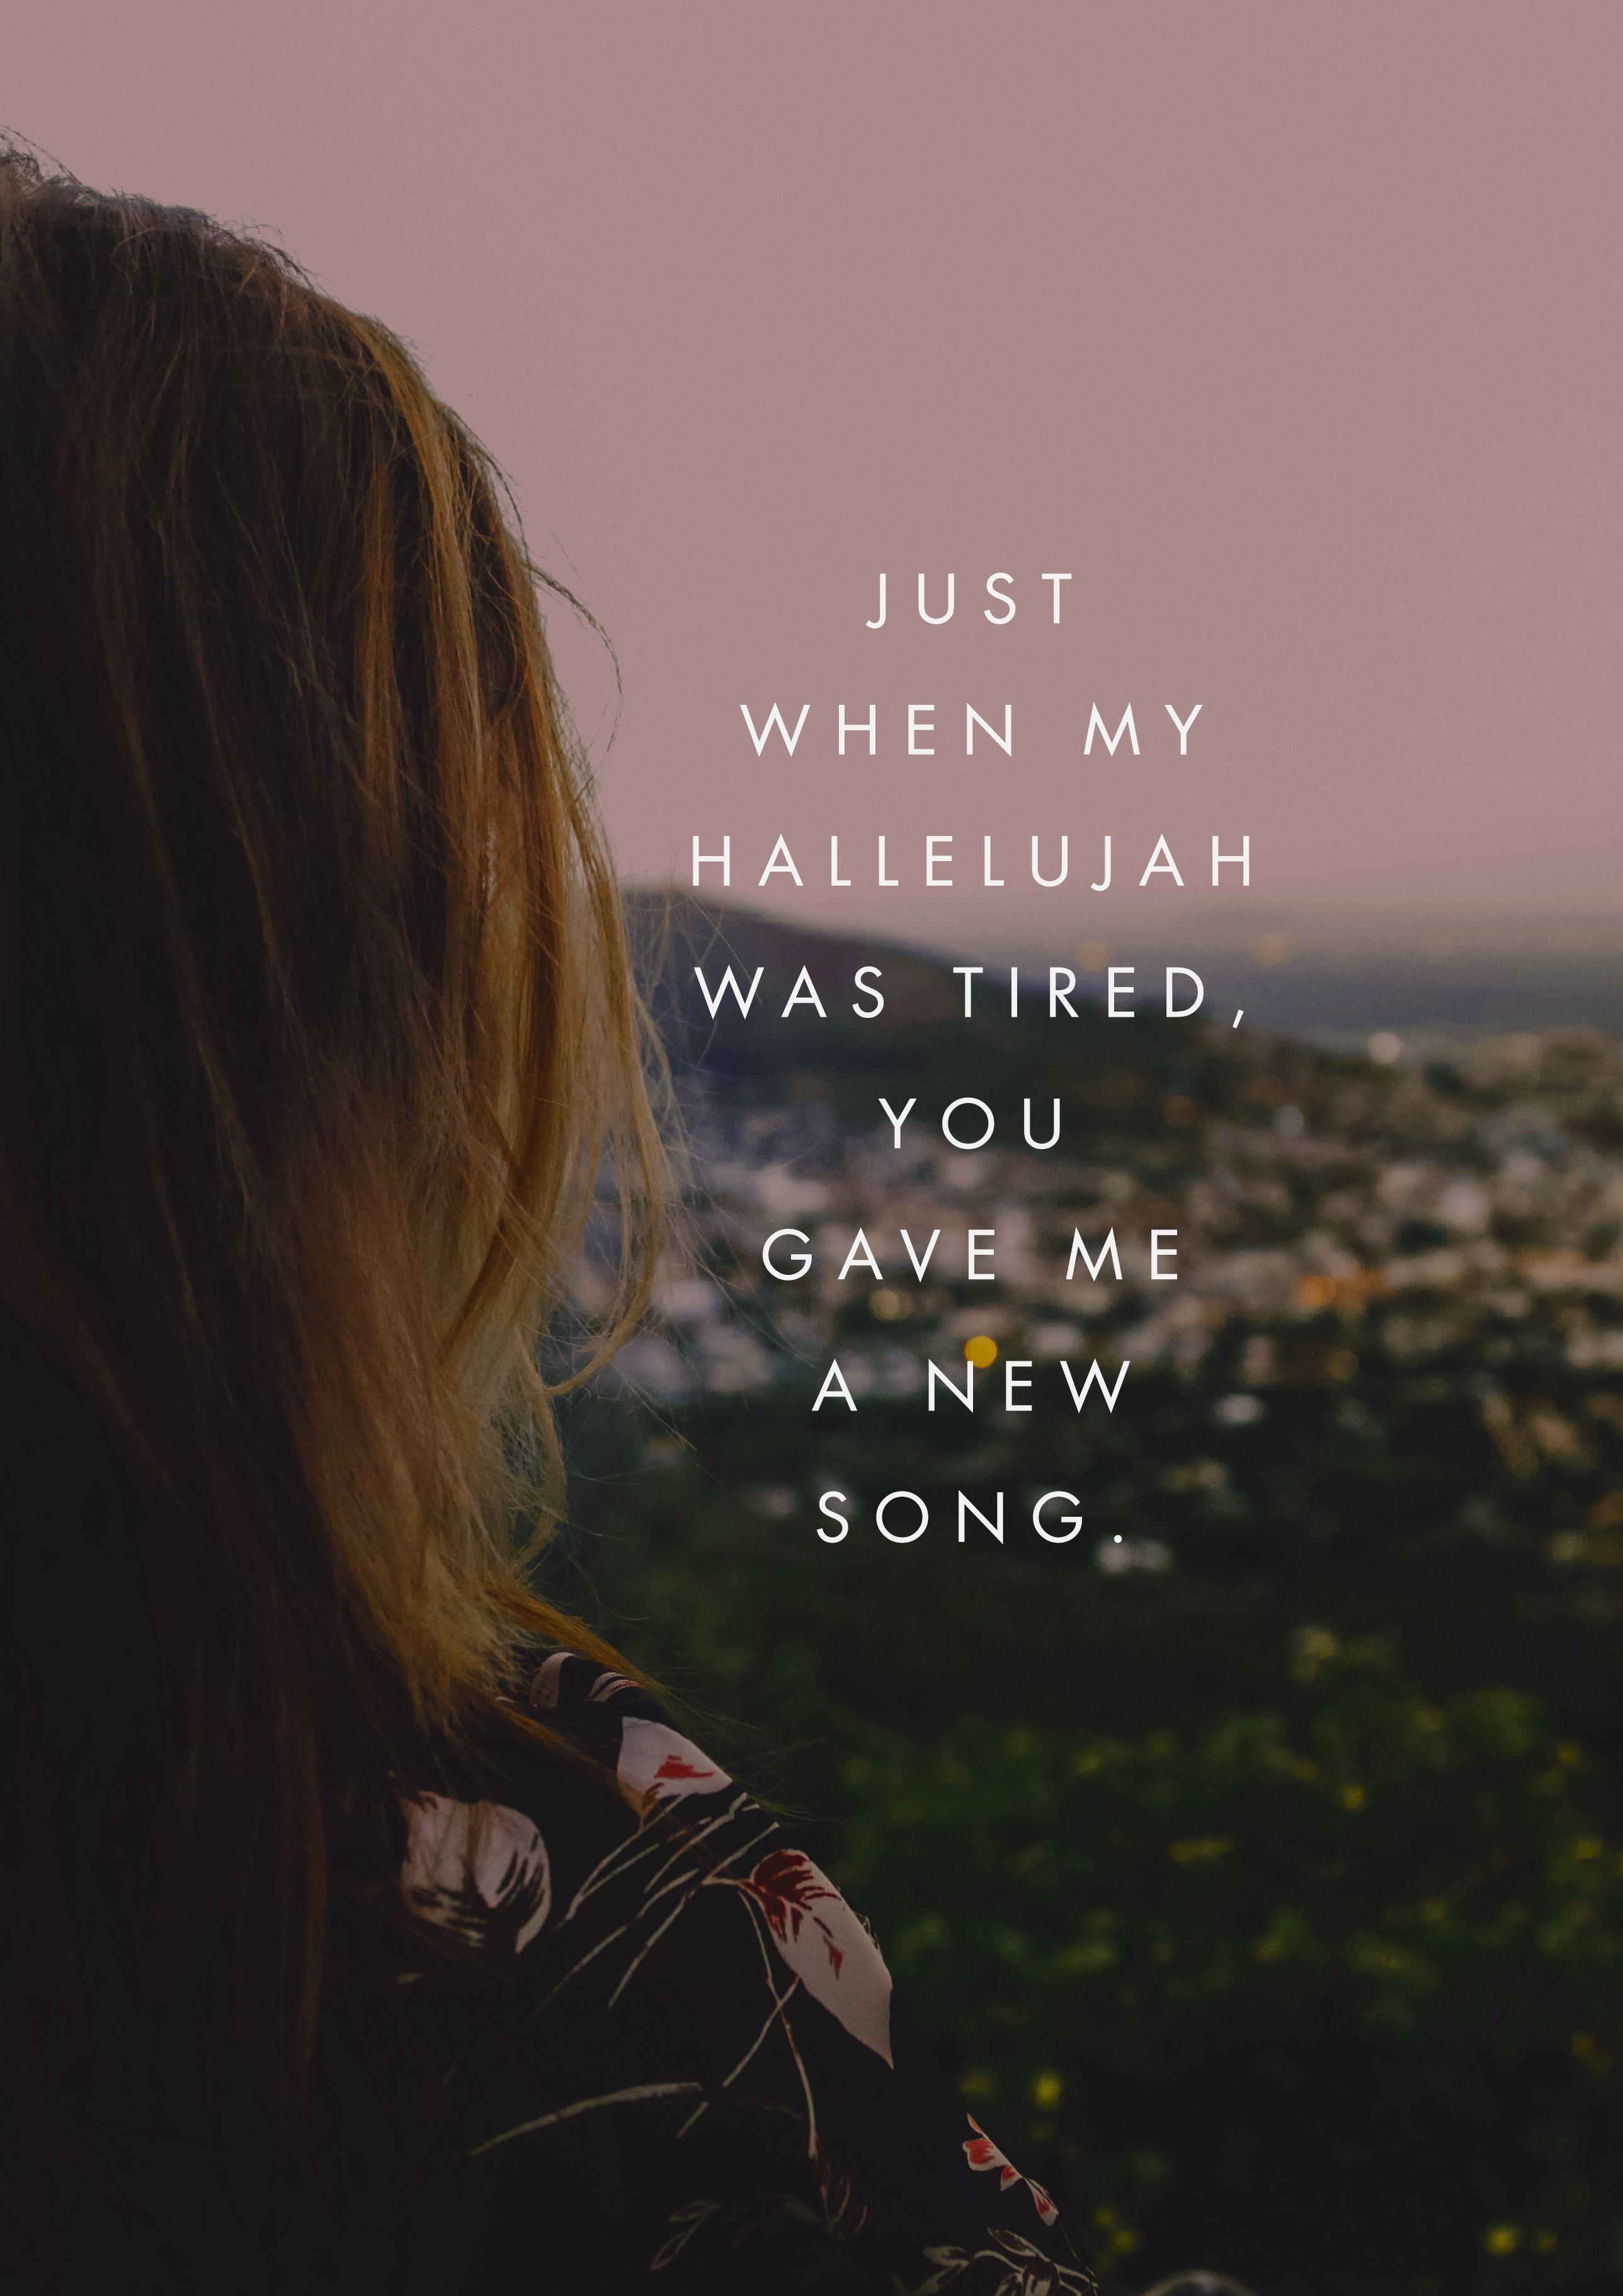 Ly lyrics to something about my praise - On My Way Home From Taping Often We Feel Weary But The Lord Always Gives Us Something To Look Forward To An Inspiration To Move Forward And Be Brave